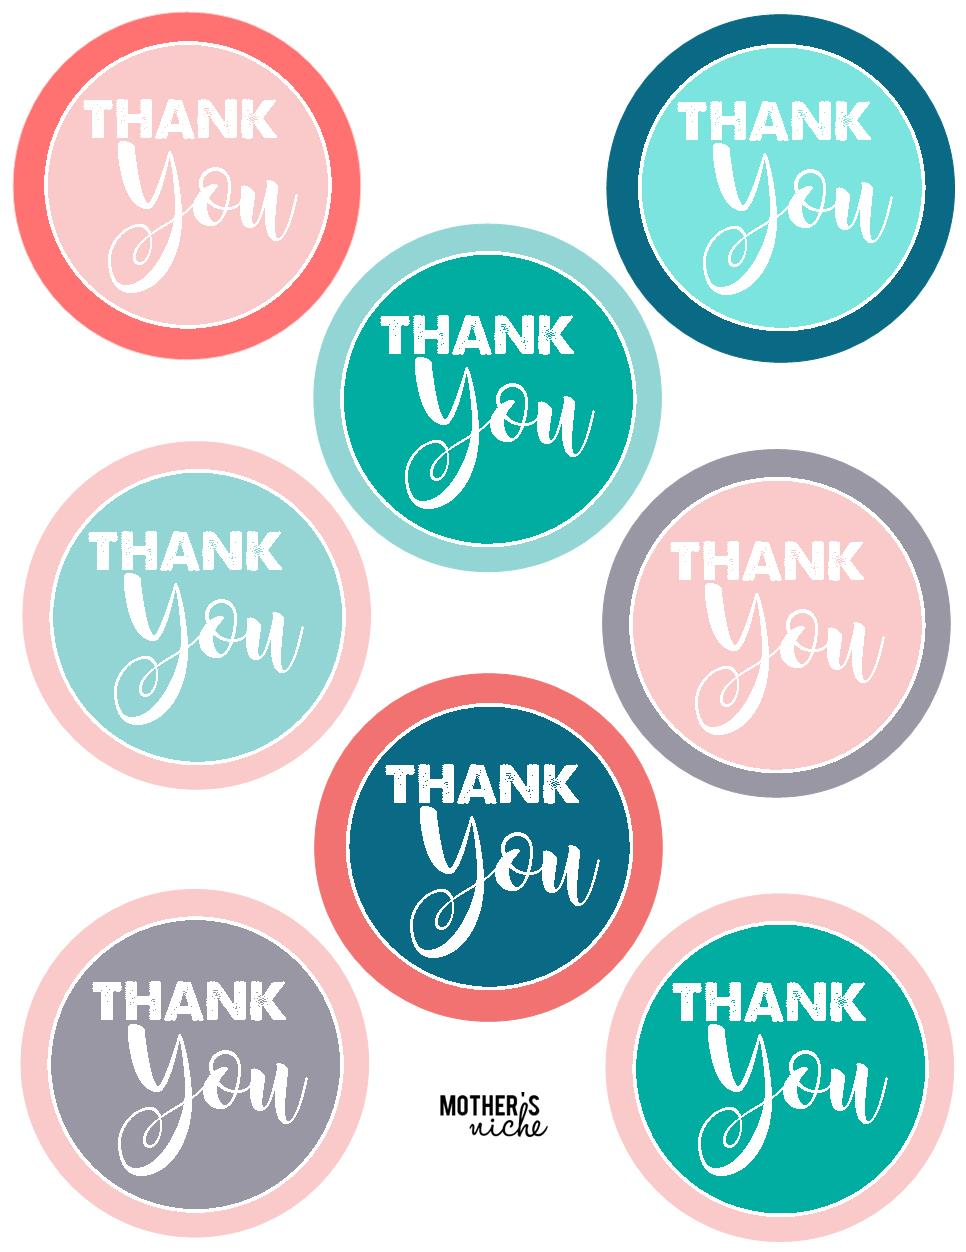 15 teacher gift ideas  free printable  u0026quot thank you u0026quot  tags